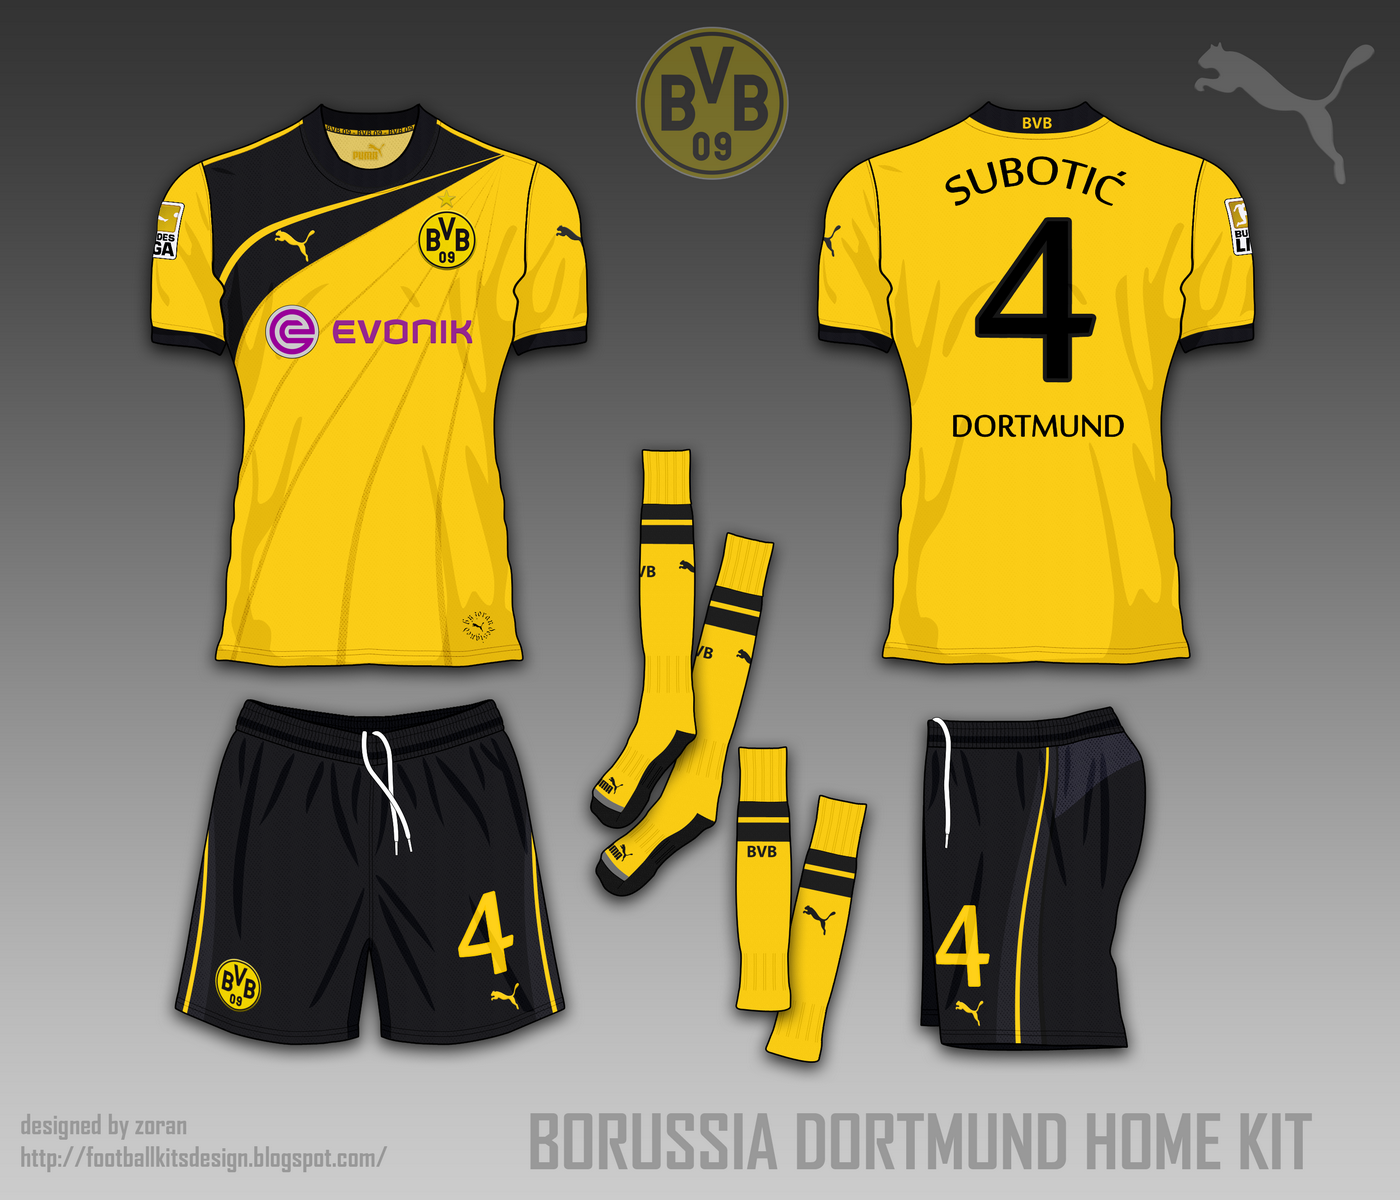 reputable site 19c6f 44120 football kits design: Borussia Dortmund fantasy kits